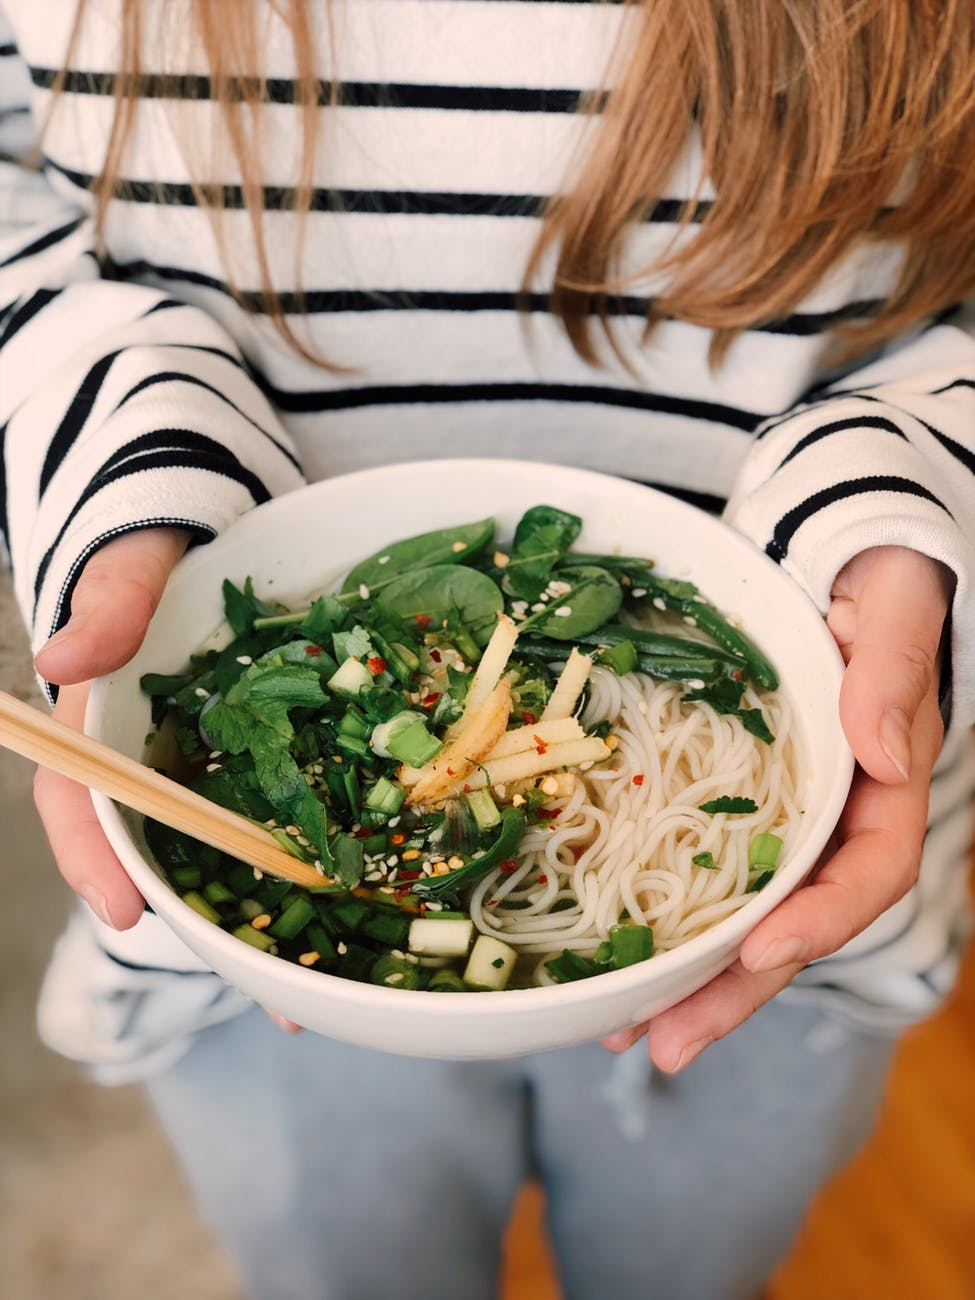 6 Healthy Noodle Meal Options to Try